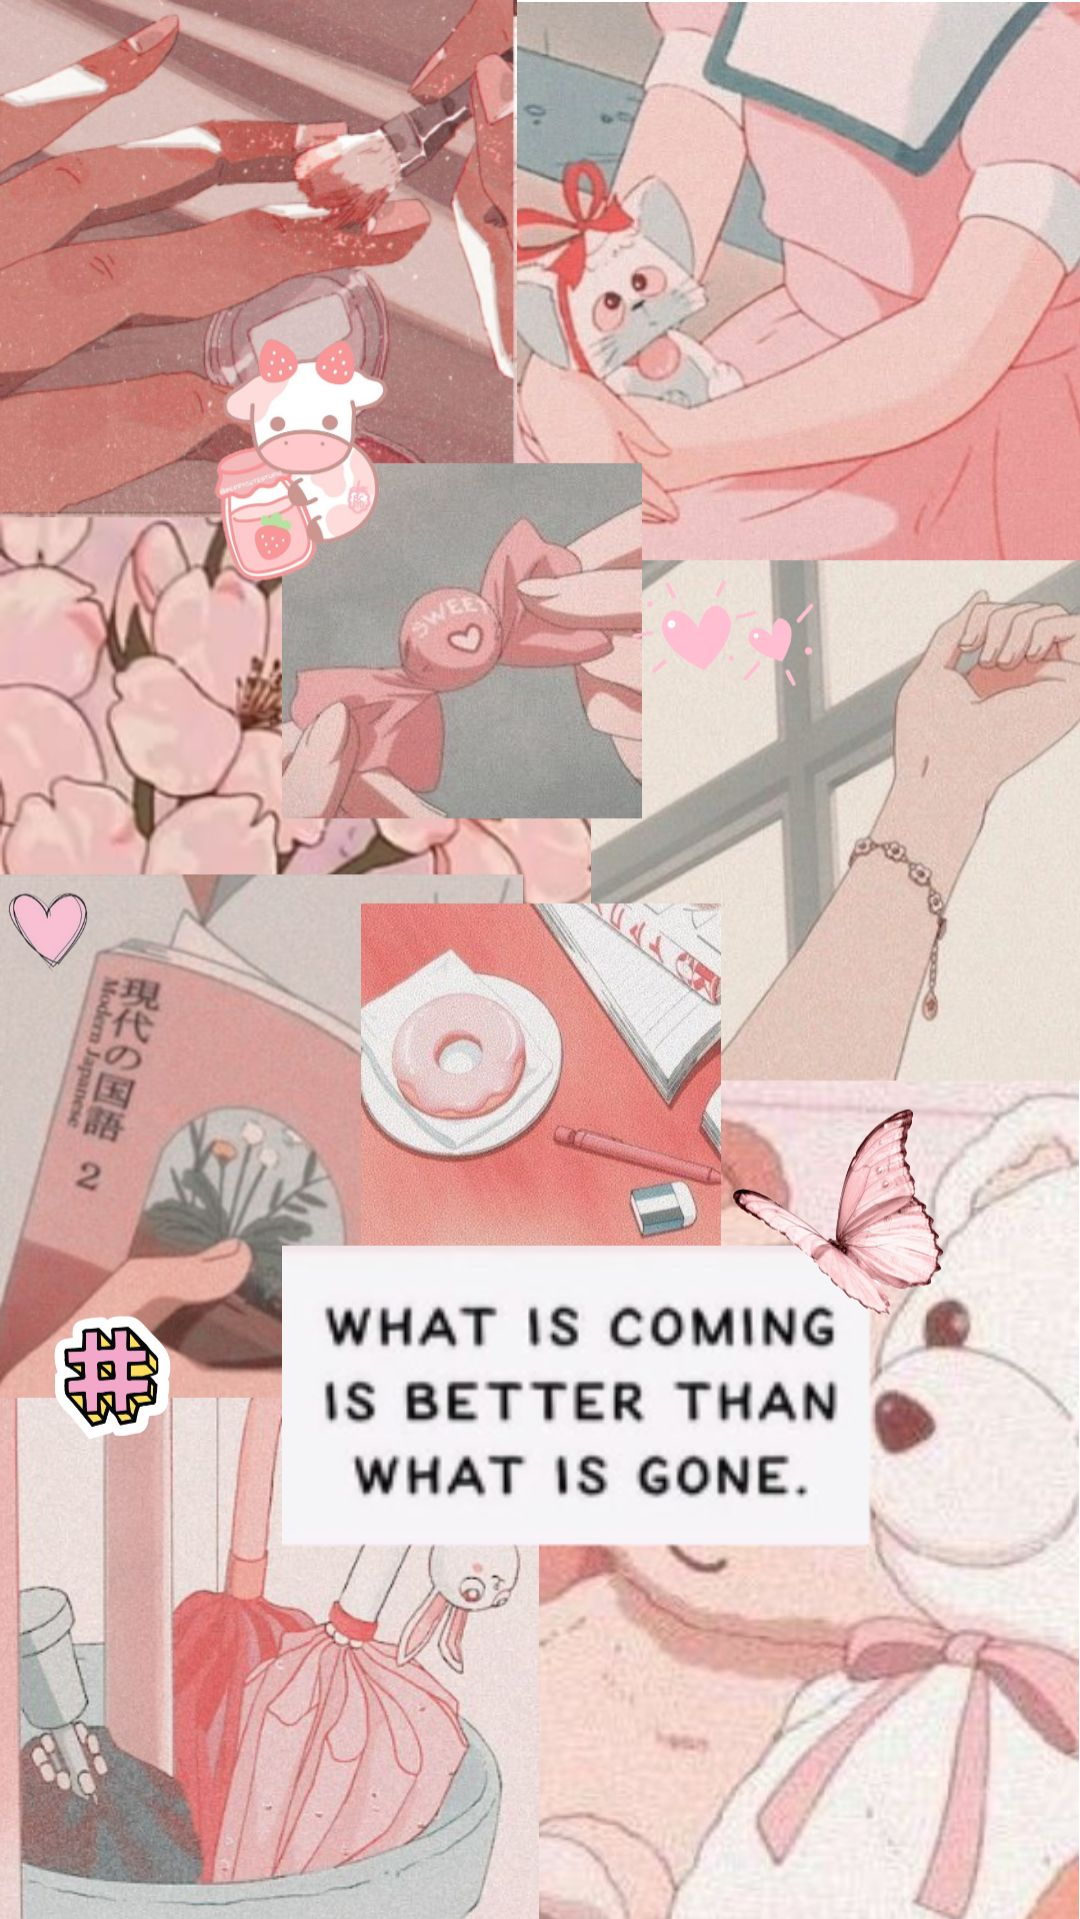 Pink Anime Aesthetic Collage Wallpaper Pink Anime Aesthetic Aesthetic Collage Wallpaper Pink Anime Cute anime wallpaper collage